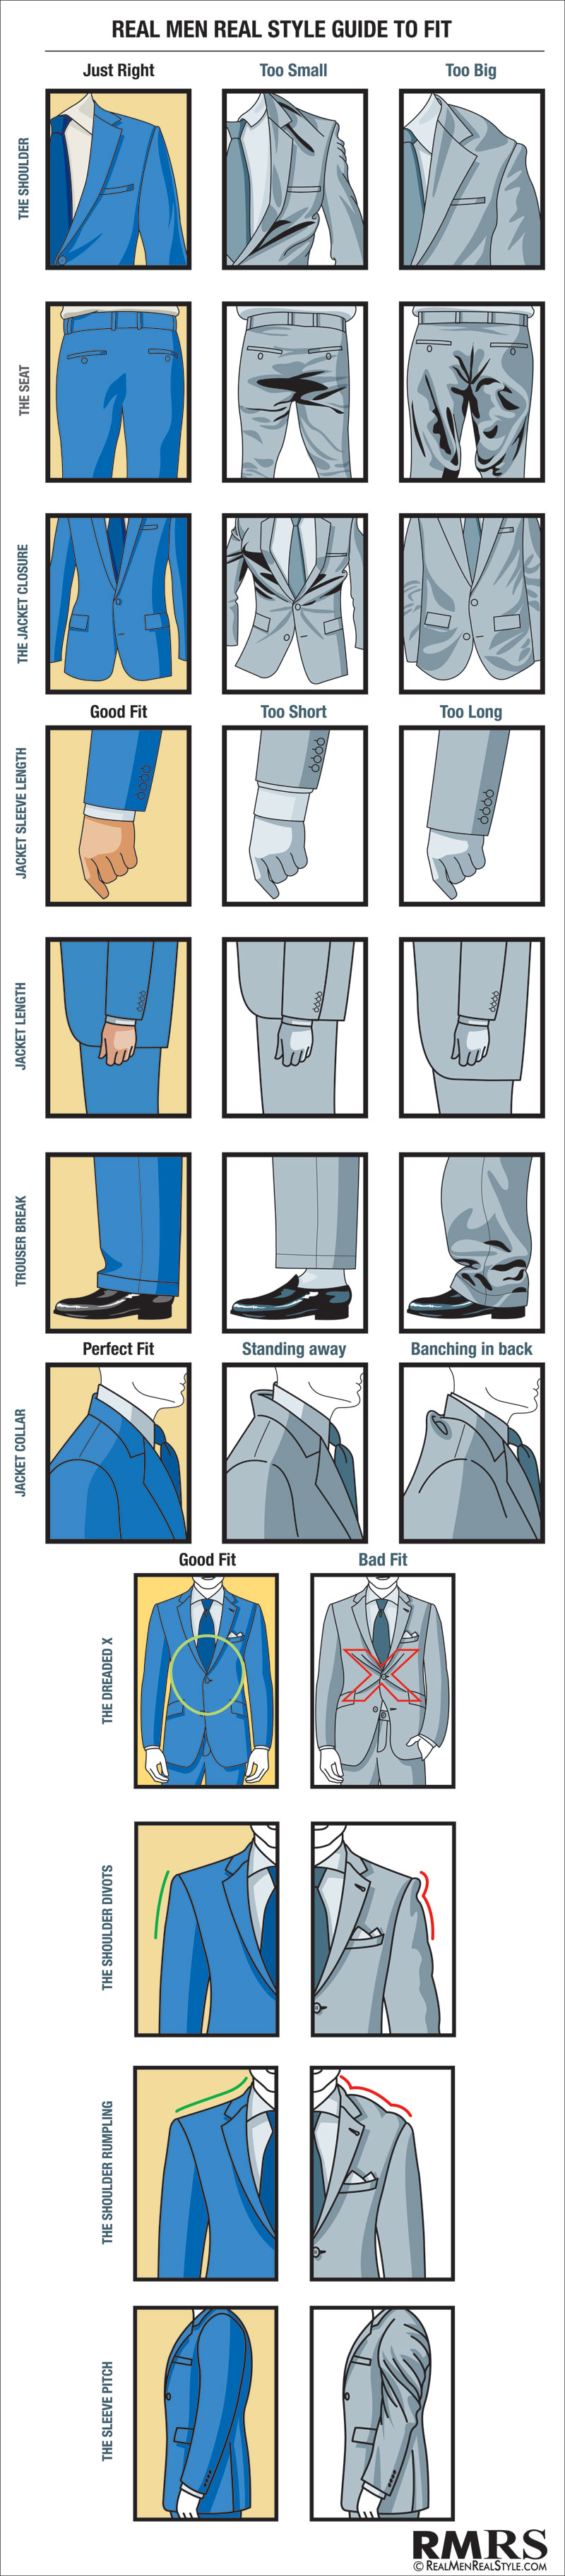 Guide for the perfect fitting suit.